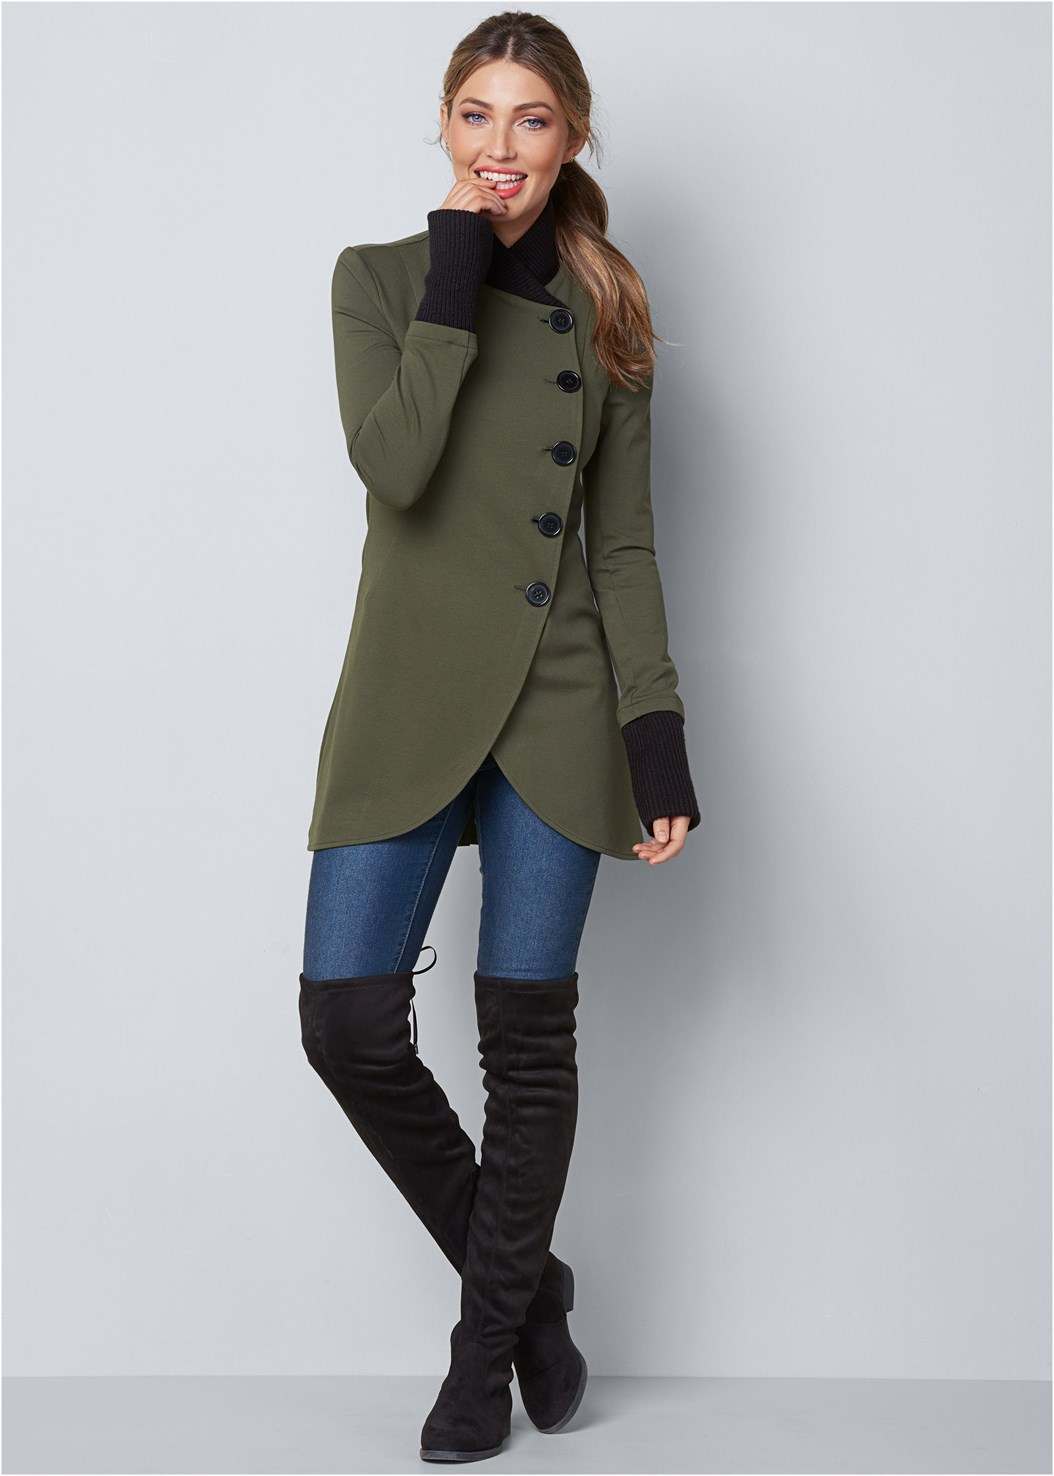 Knit Asymmetrical Button Front Jacket,Mid Rise Color Skinny Jeans,Block Heel Boots,Slouchy Mid Calf Boots,Lace Up Tall Boots